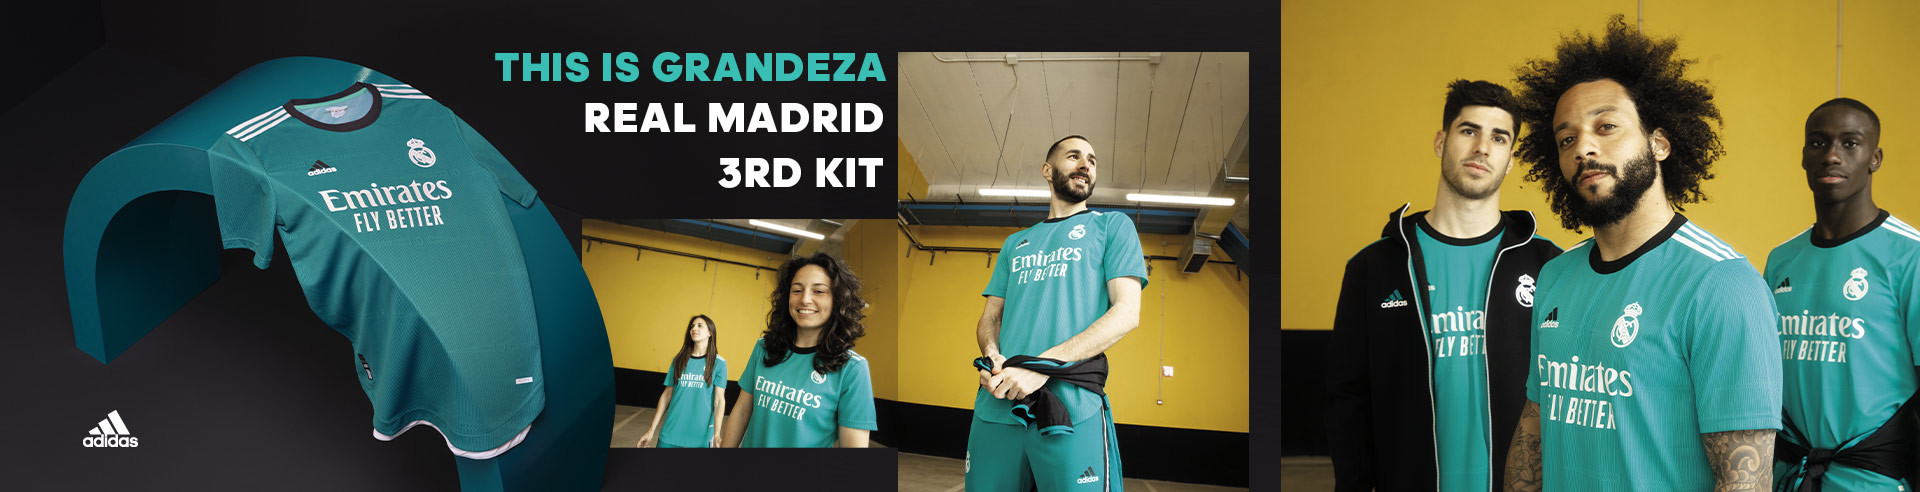 ADIDAS REAL MADRID 3RD KIT SEPTIEMBRE 2021